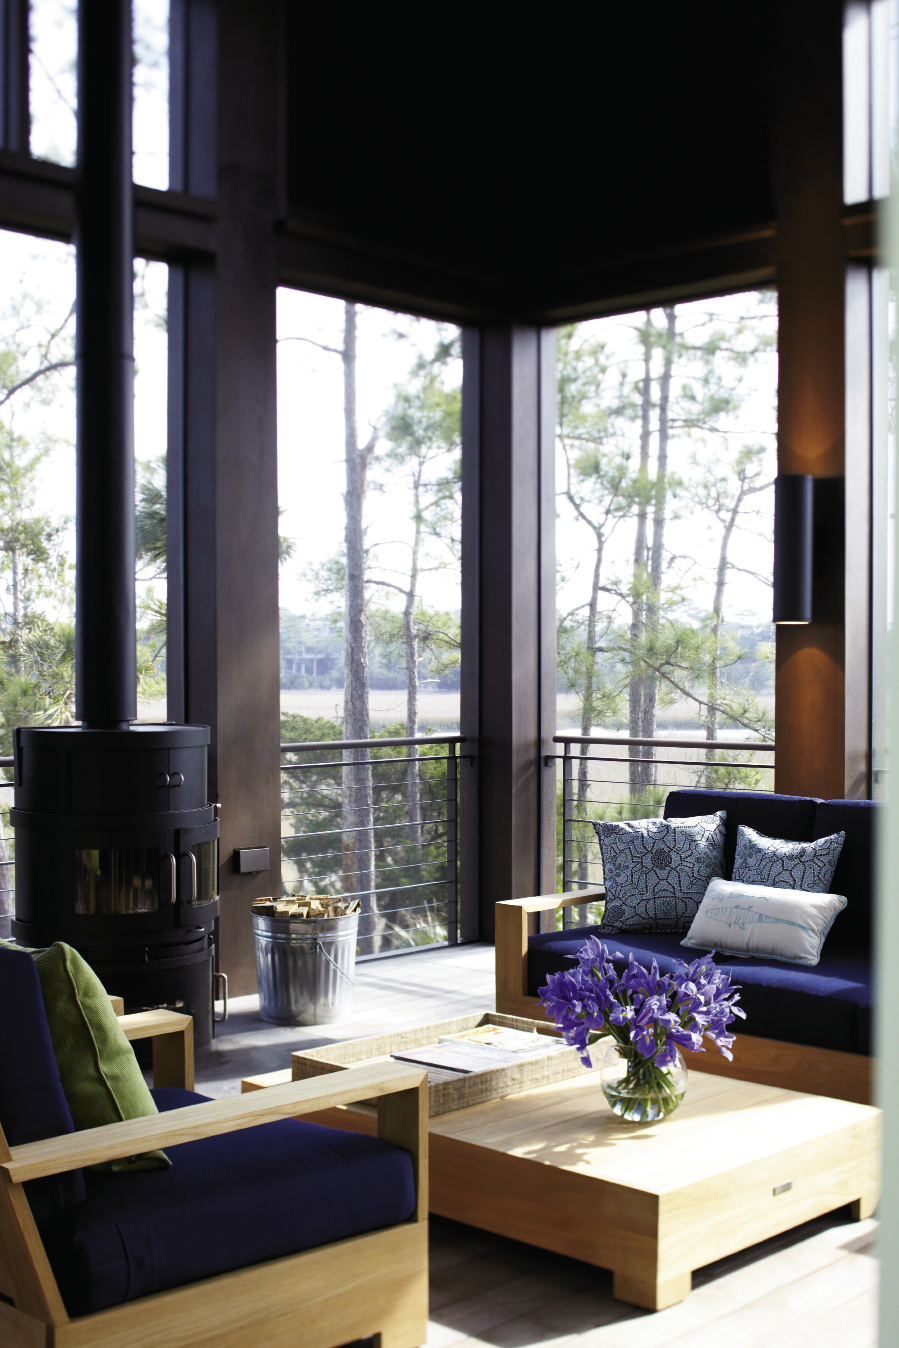 The screened porch off the living room